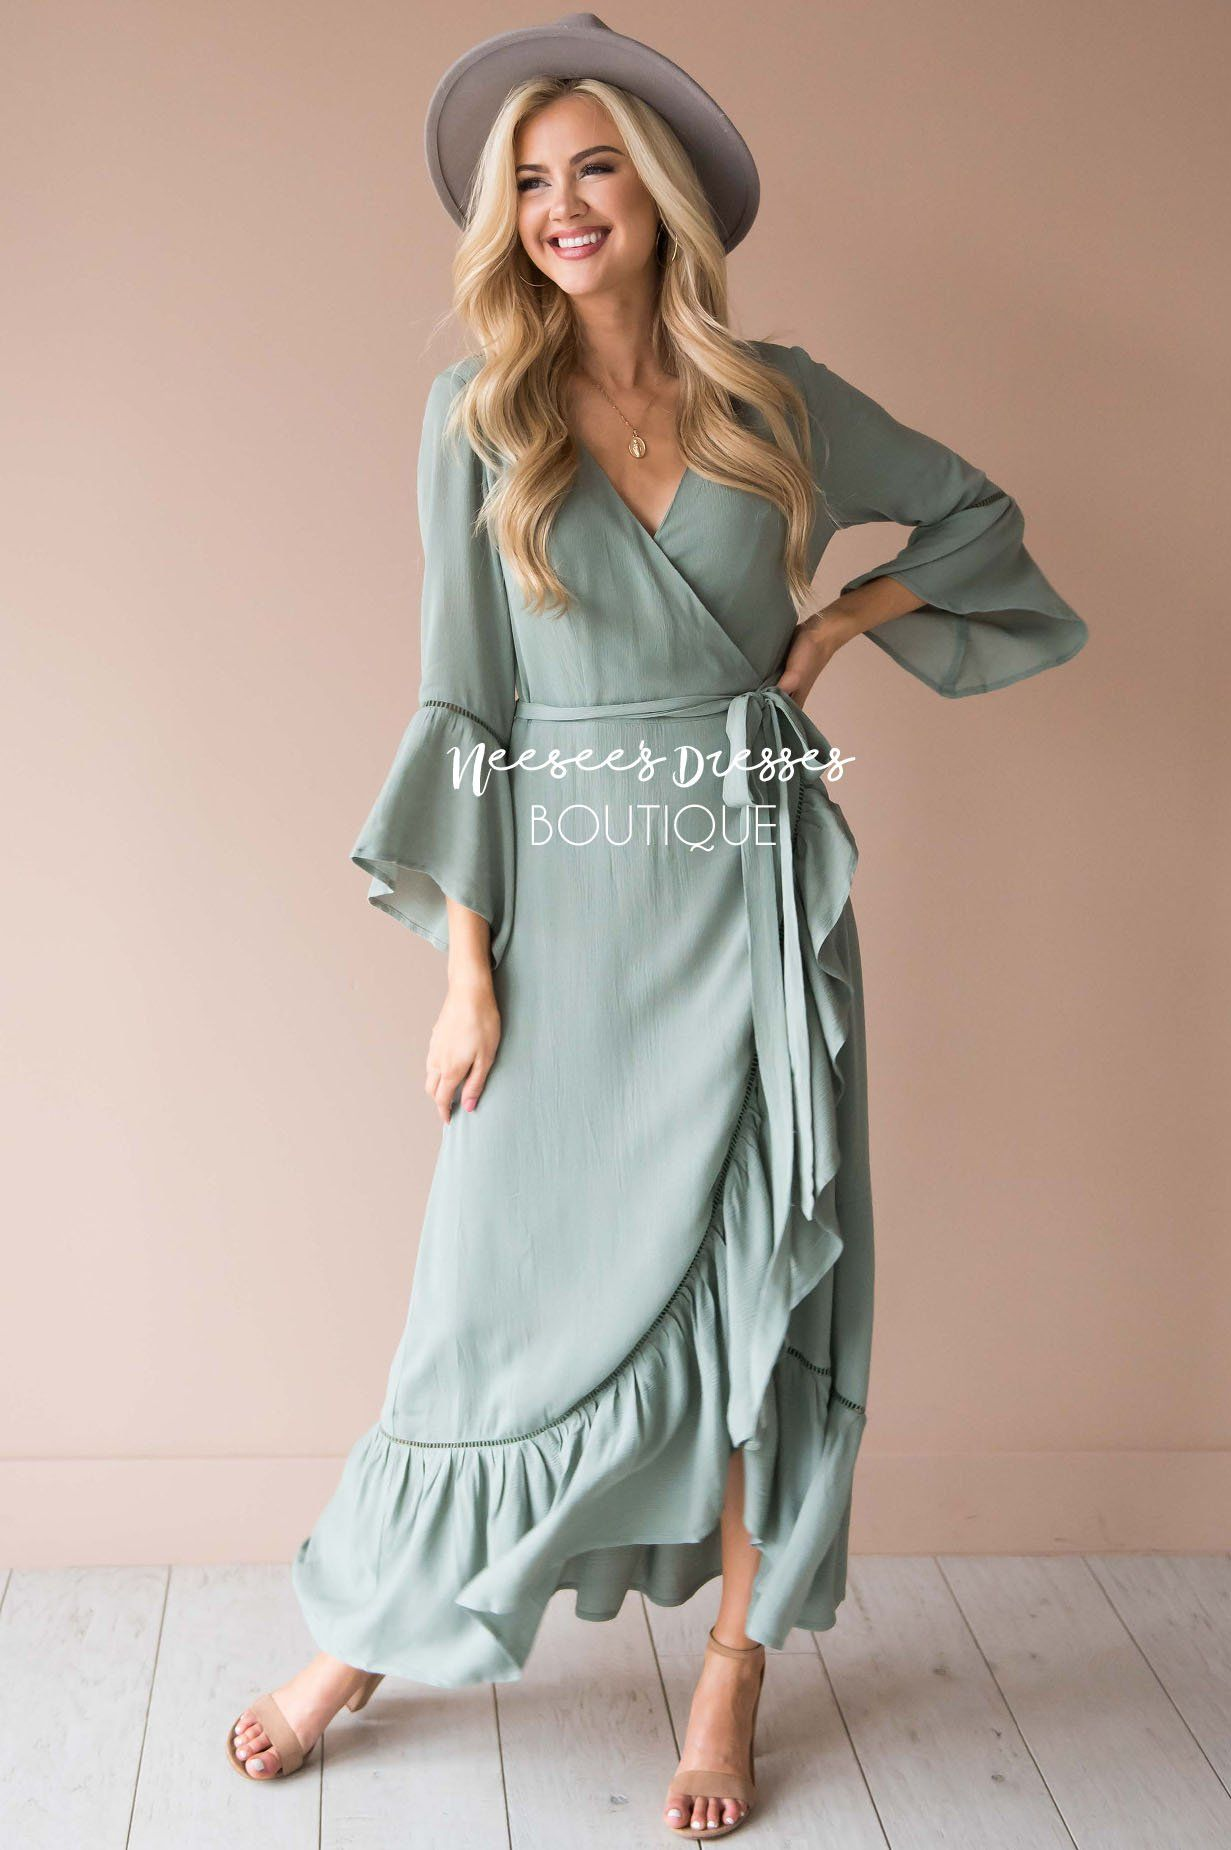 a86baf5a202 The Alanis Modest Dresses vendor-unknown